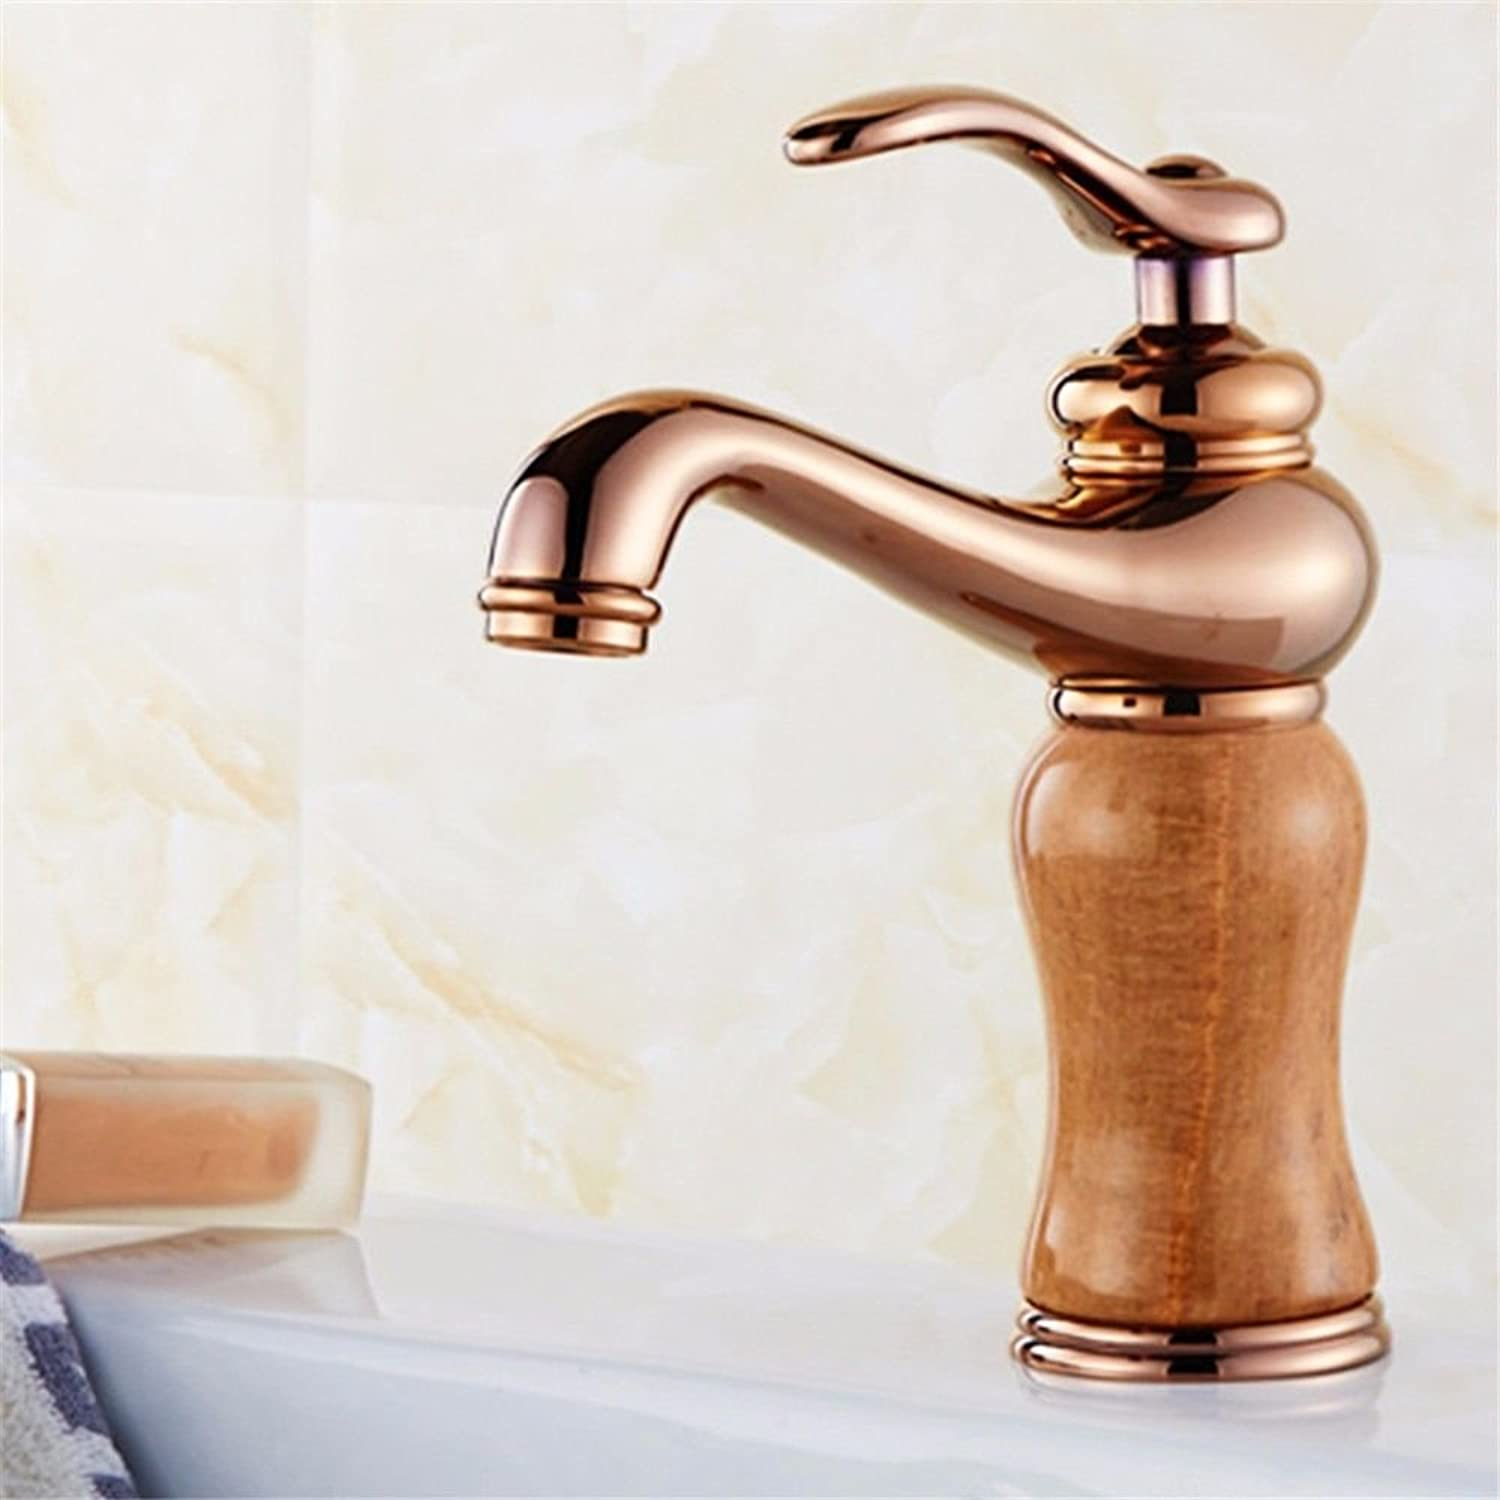 Hlluya Professional Sink Mixer Tap Kitchen Faucet Bathroom Cabinets full copper to redate the faucet sink hot and cold jade kitchen sink, pink gold